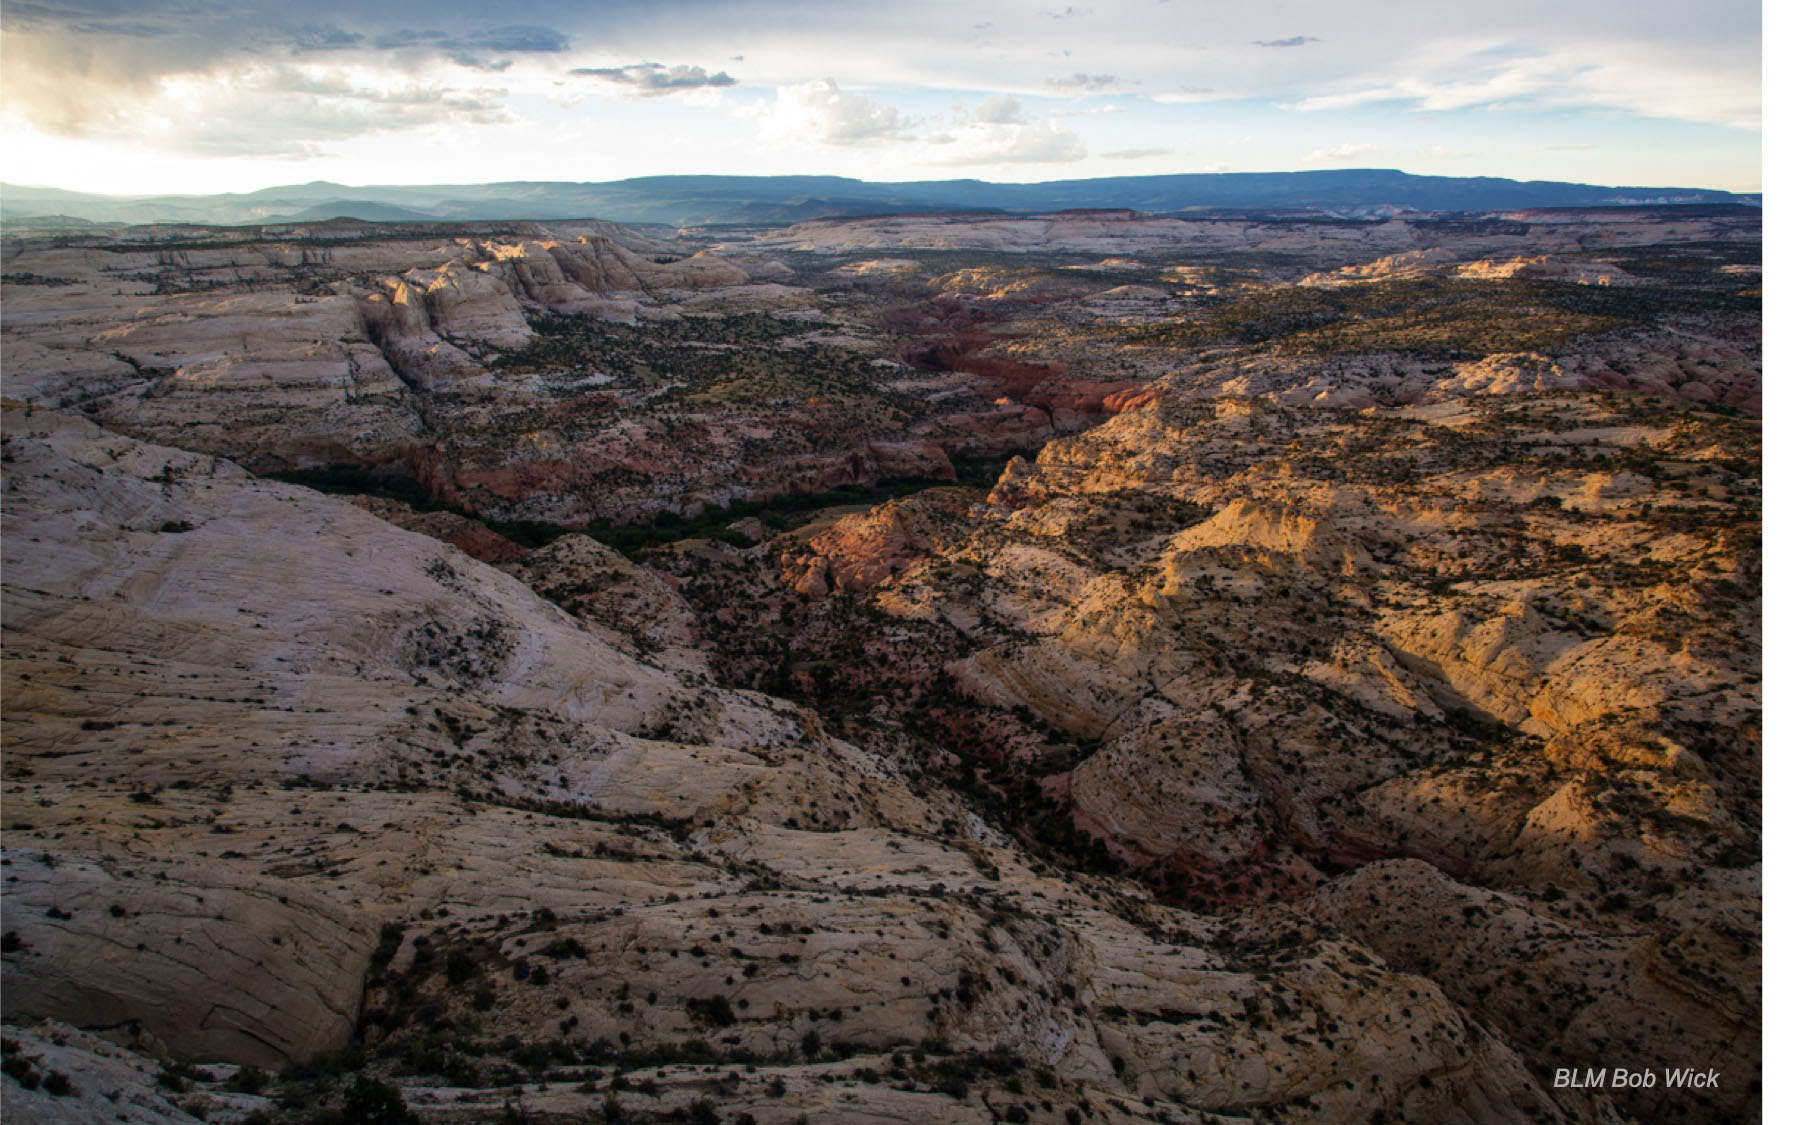 Oppose Development in Utah's Grand Staircase-Escalante National Monument